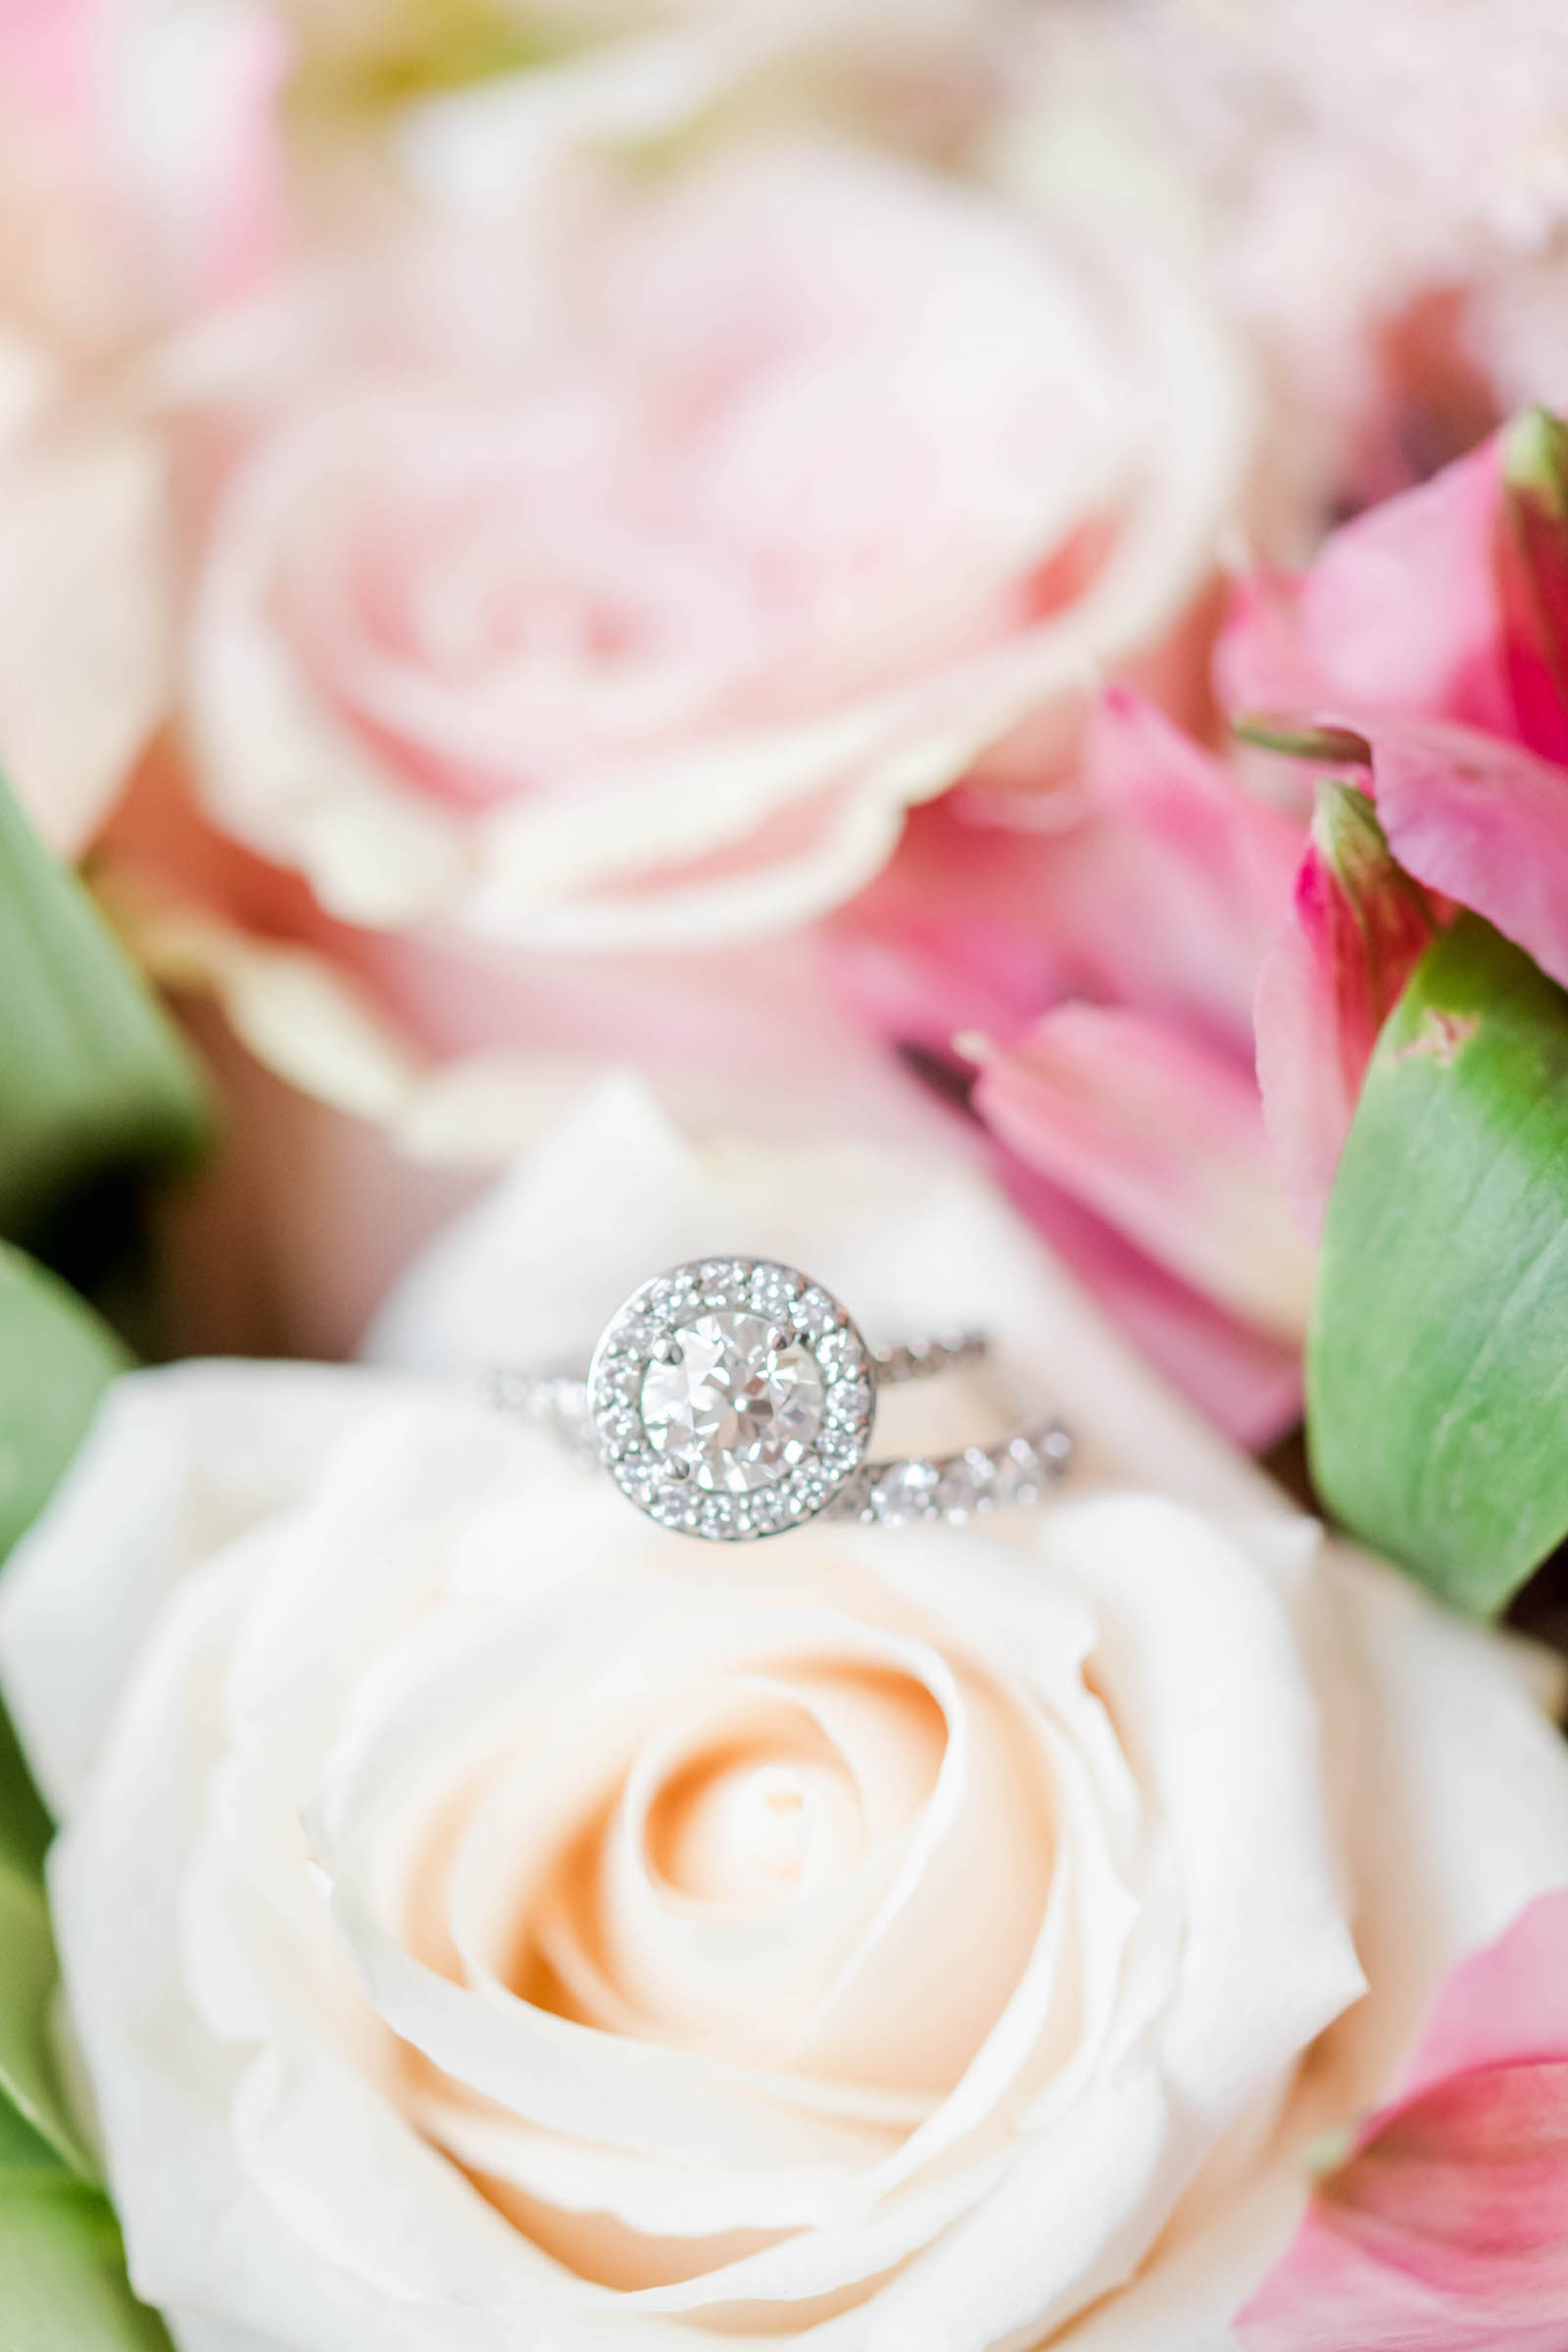 Round Solitaire Diamond and Halo Engagement Ring